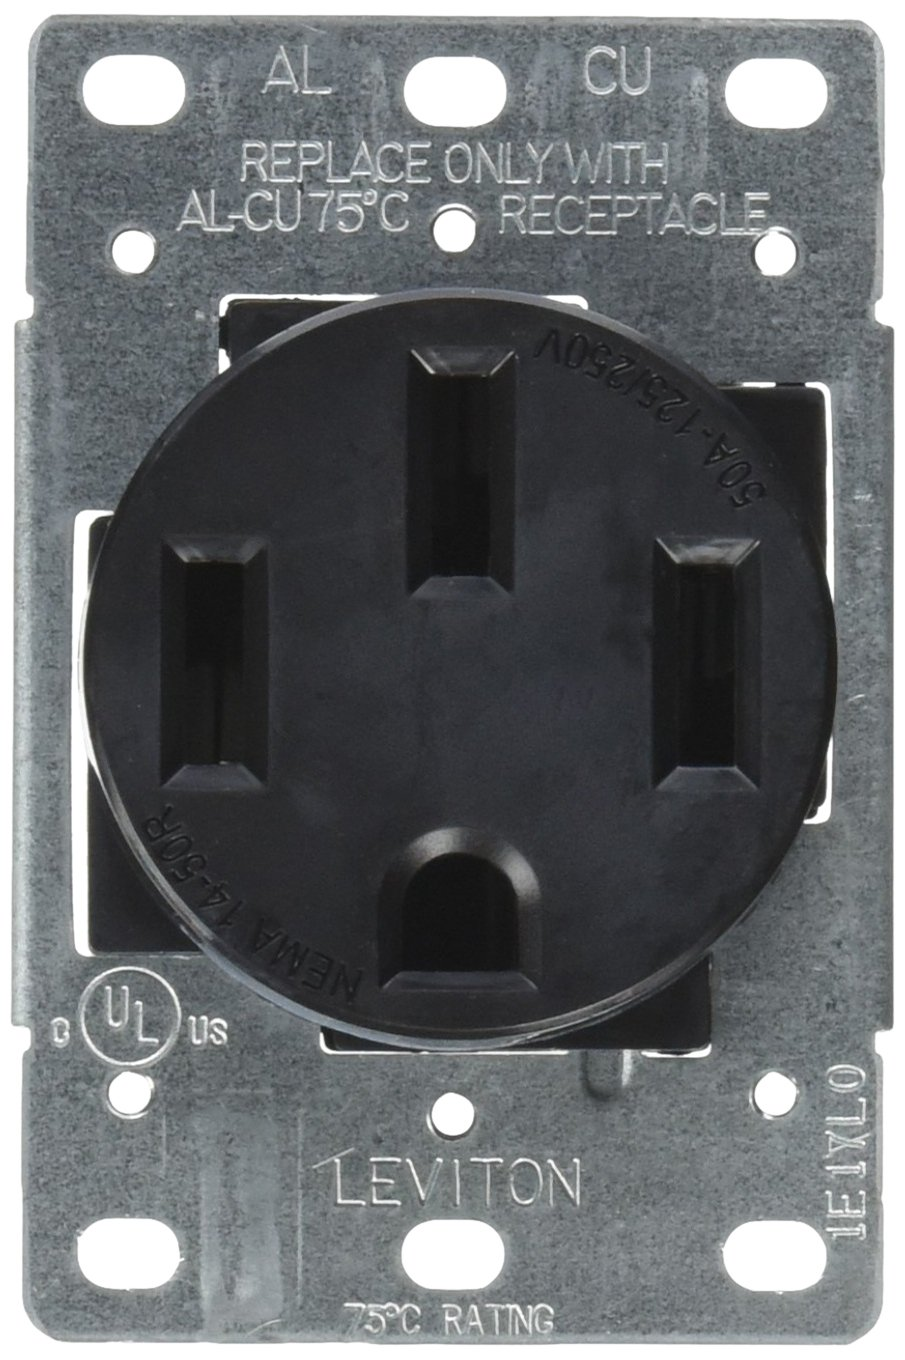 Leviton 279-S00 50 Amp, 125/250V, Nema 14-50R, 3P, 4W, Flush Mounting Receptacle, Straight Blade, Industrial Grade, Grounding, Side Wired, Steel Strap, Black